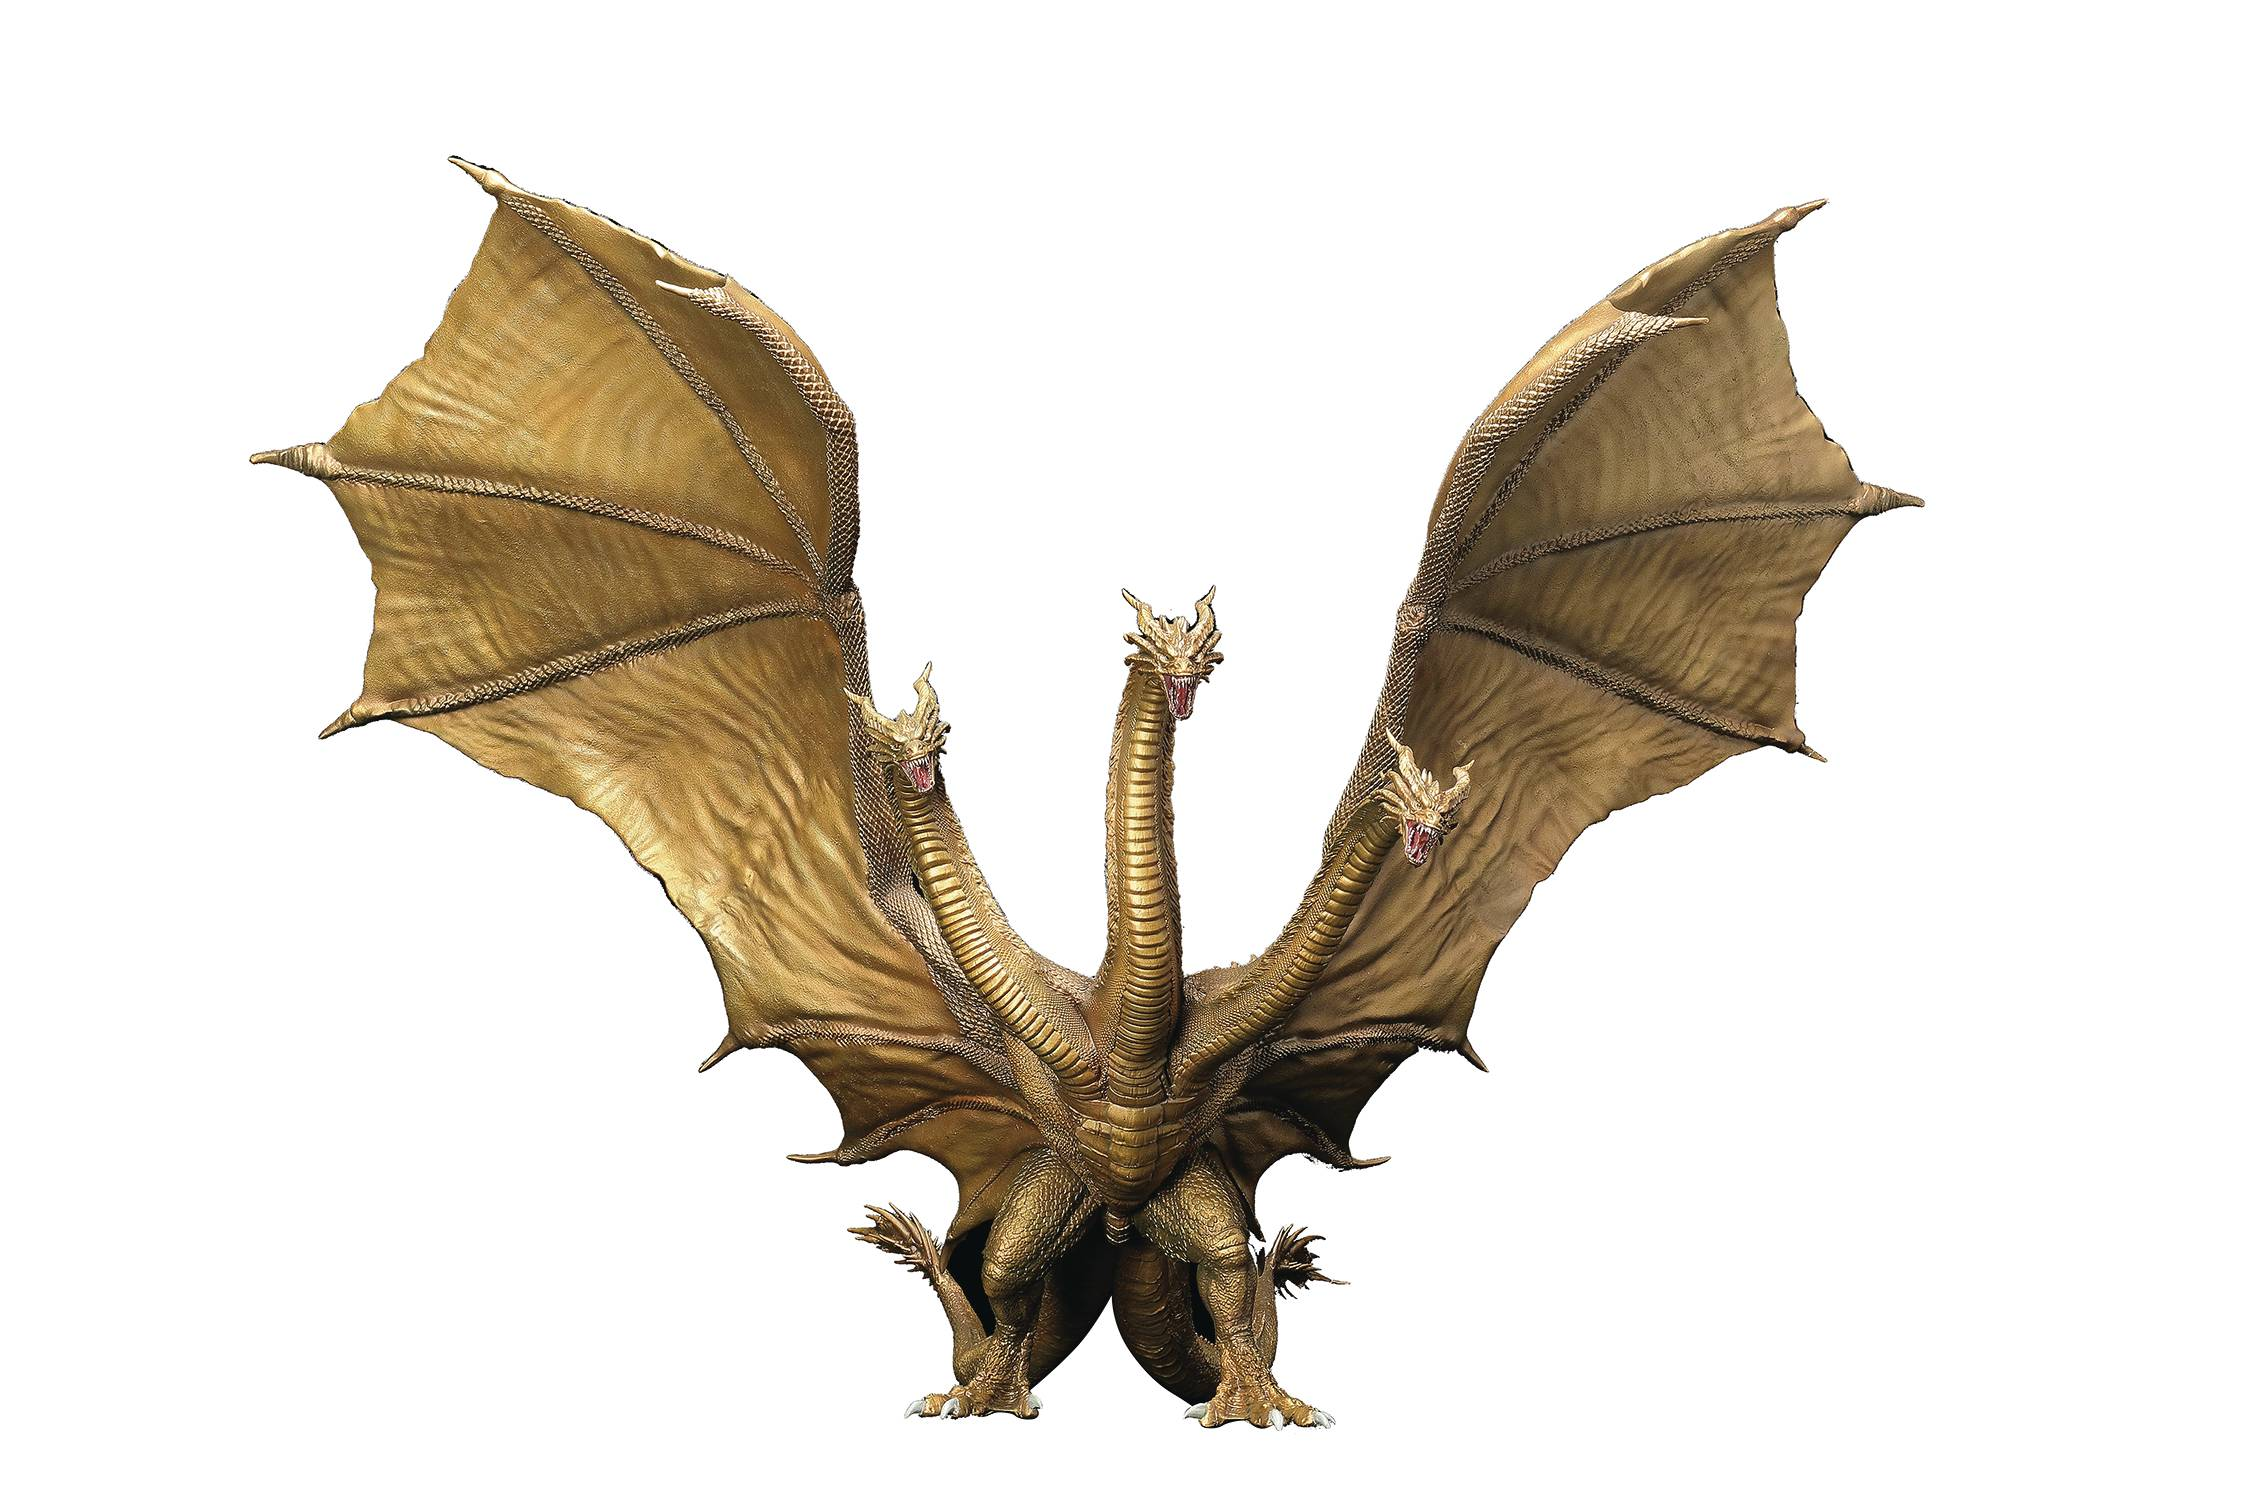 GODZILLA 2019 HYPER SOLID SER GHIDORAH PVC STATUE (NET) (C: | L.A. Mood Comics and Games